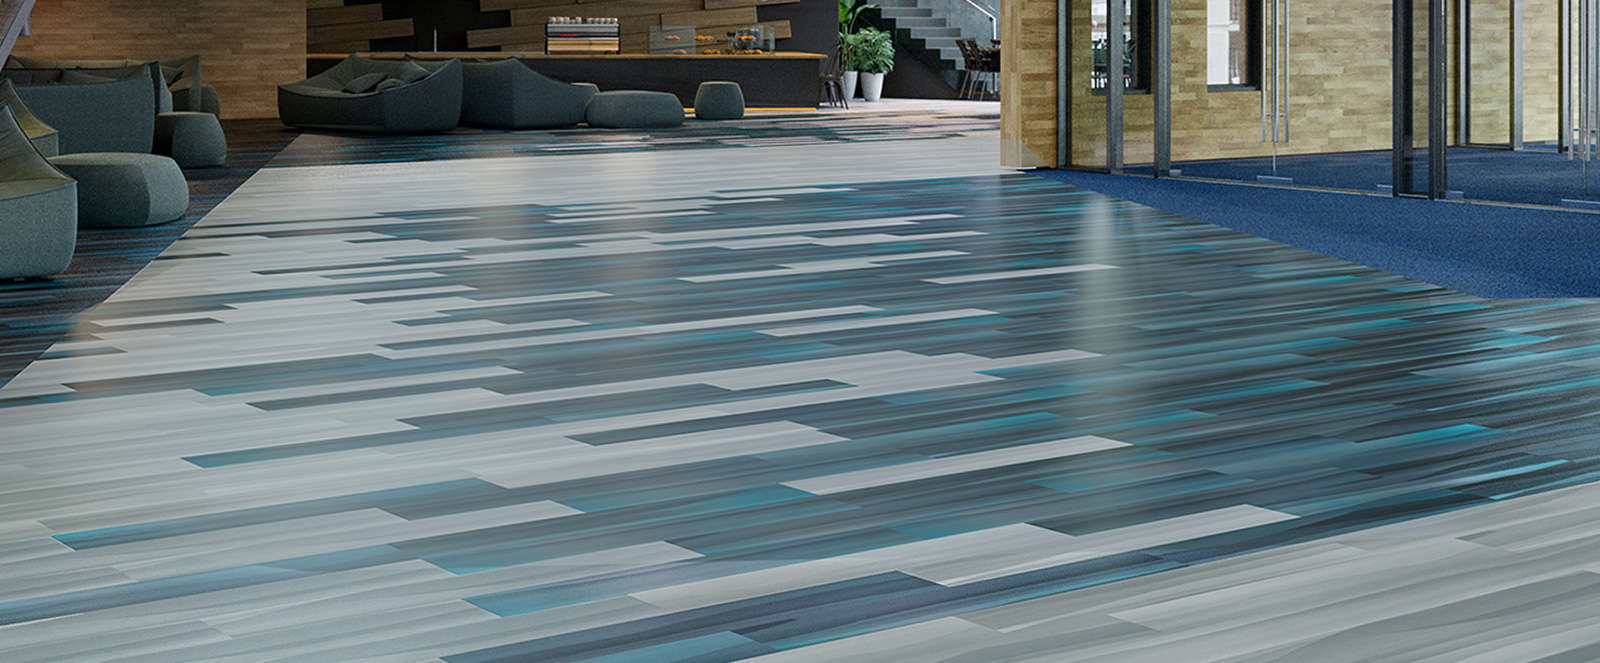 Luxury Vinyl, Carpet, Resilient, and Hardwood Floors | Mannington Commercial